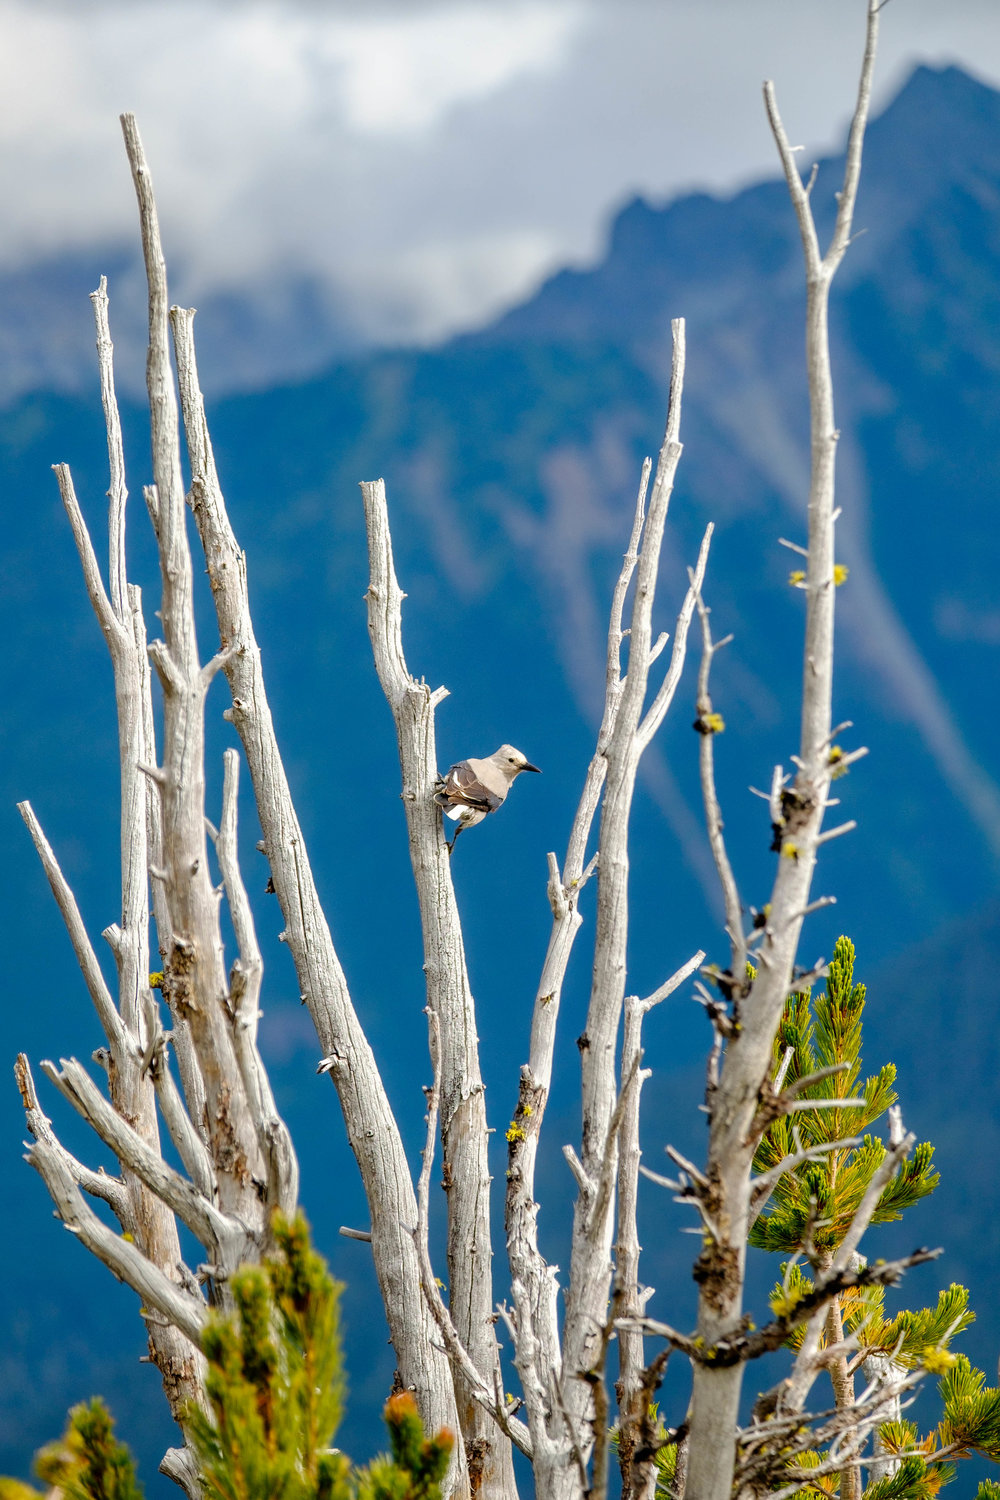 Clark's Nutcracker in Mount Rainier National Park in Washington.